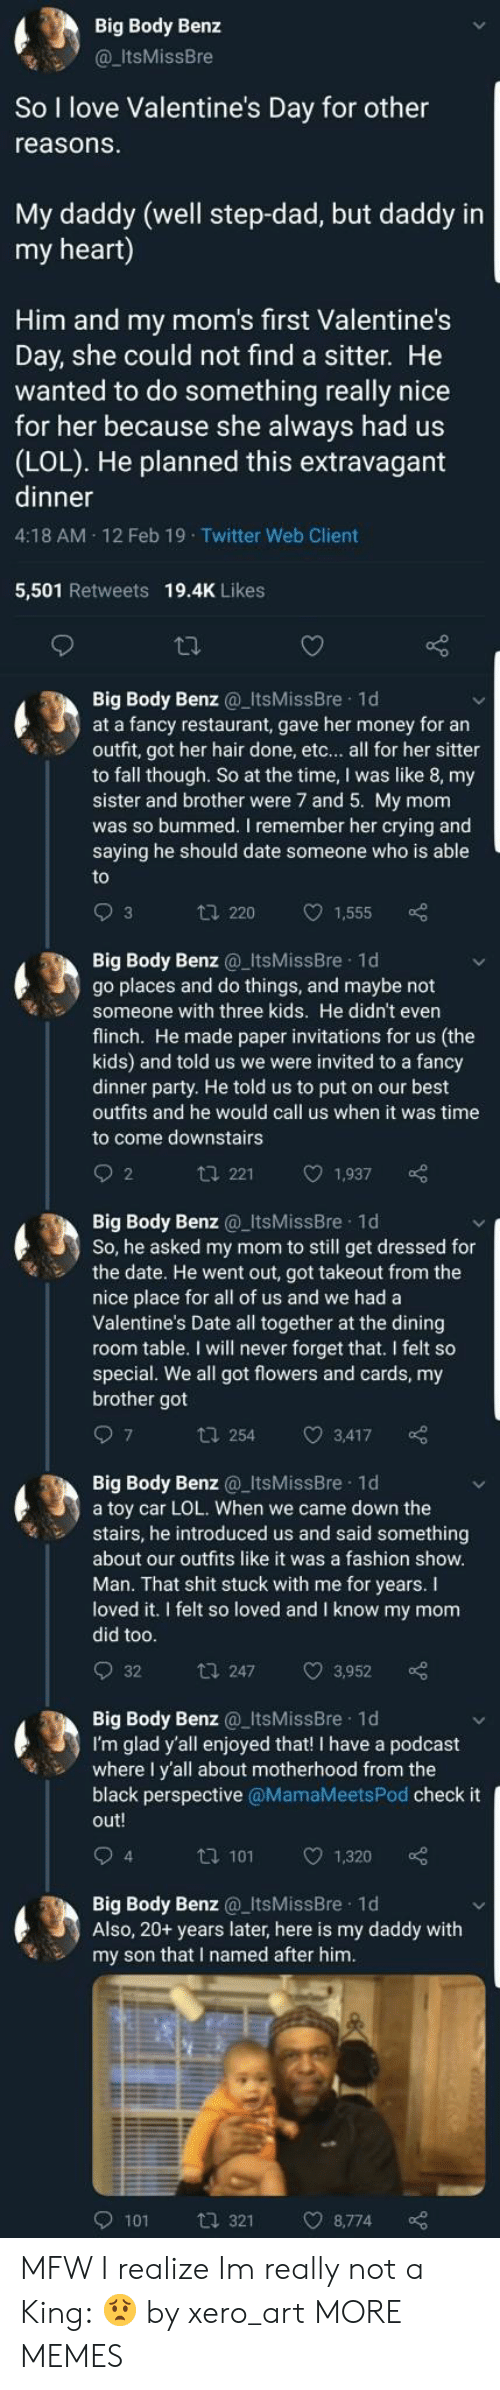 MFW: Big Body Benz  @ItsMissBre  So I love Valentine's Day for other  reasons  My daddy (well step-dad, but daddy in  my heart)  Him and my mom's first Valentine's  Day, she could not find a sitter. He  wanted to do something really nice  for her because she always had us  (LOL). He planned this extravagant  dinner  4:18 AM 12 Feb 19 Twitter Web Client  5,501 Retweets 19.4K Likes  Big Body Benz ItsMissBre 1d  at a fancy restaurant, gave her money for an  outfit, got her hair done, etc... all for her sitter  to fall though. So at the time, I was like 8, my  sister and brother were 7 and 5. My mom  was so bummed. I remember her crying and  saying he should date someone who is able  t 220 1,555  Big Body Benz ItsMissBre 1d  go places and do things, and maybe not  Someone with three kids. He didn't even  flinch. He made paper invitations for us (the  kids) and told us we were invited to a fancy  dinner party. He told us to put on our best  outfits and he would call us when it was time  to come downstairs  2  t 221 1,937  Big Body Benz ItsMissBre 1d  So, he asked my mom to still get dressed for  the date. He went out, got takeout from the  nice place for all of us and we had a  Valentine's Date all together at the dining  room table. I will never forget that. I felt so  special. We all got flowers and cards, my  brother got  t 254 3,417  Big Body Benz@_ItsMissBre 1d  a toy car LOL. When we came down the  stairs, he introduced us and said something  about our outfits like it was a fashion show  Man. That shit stuck with me for years. I  loved it. I felt so loved and I know my mom  did too  t 247 3,952  Big Body Benz_ItsMissBre 1d  I'm glad y'all enjoyed that! I have a podcast  where I y'all about motherhood from the  black perspective @MamaMeetsPod check it  out!  4  ta 101 1  1,320  Big Body Benz_ItsMissBre 1d  Also, 20+ years later, here is my daddy with  my son that I named after hinm  9101  321  8,774 MFW I realize Im really not a King: 😟 by xero_art MORE MEMES